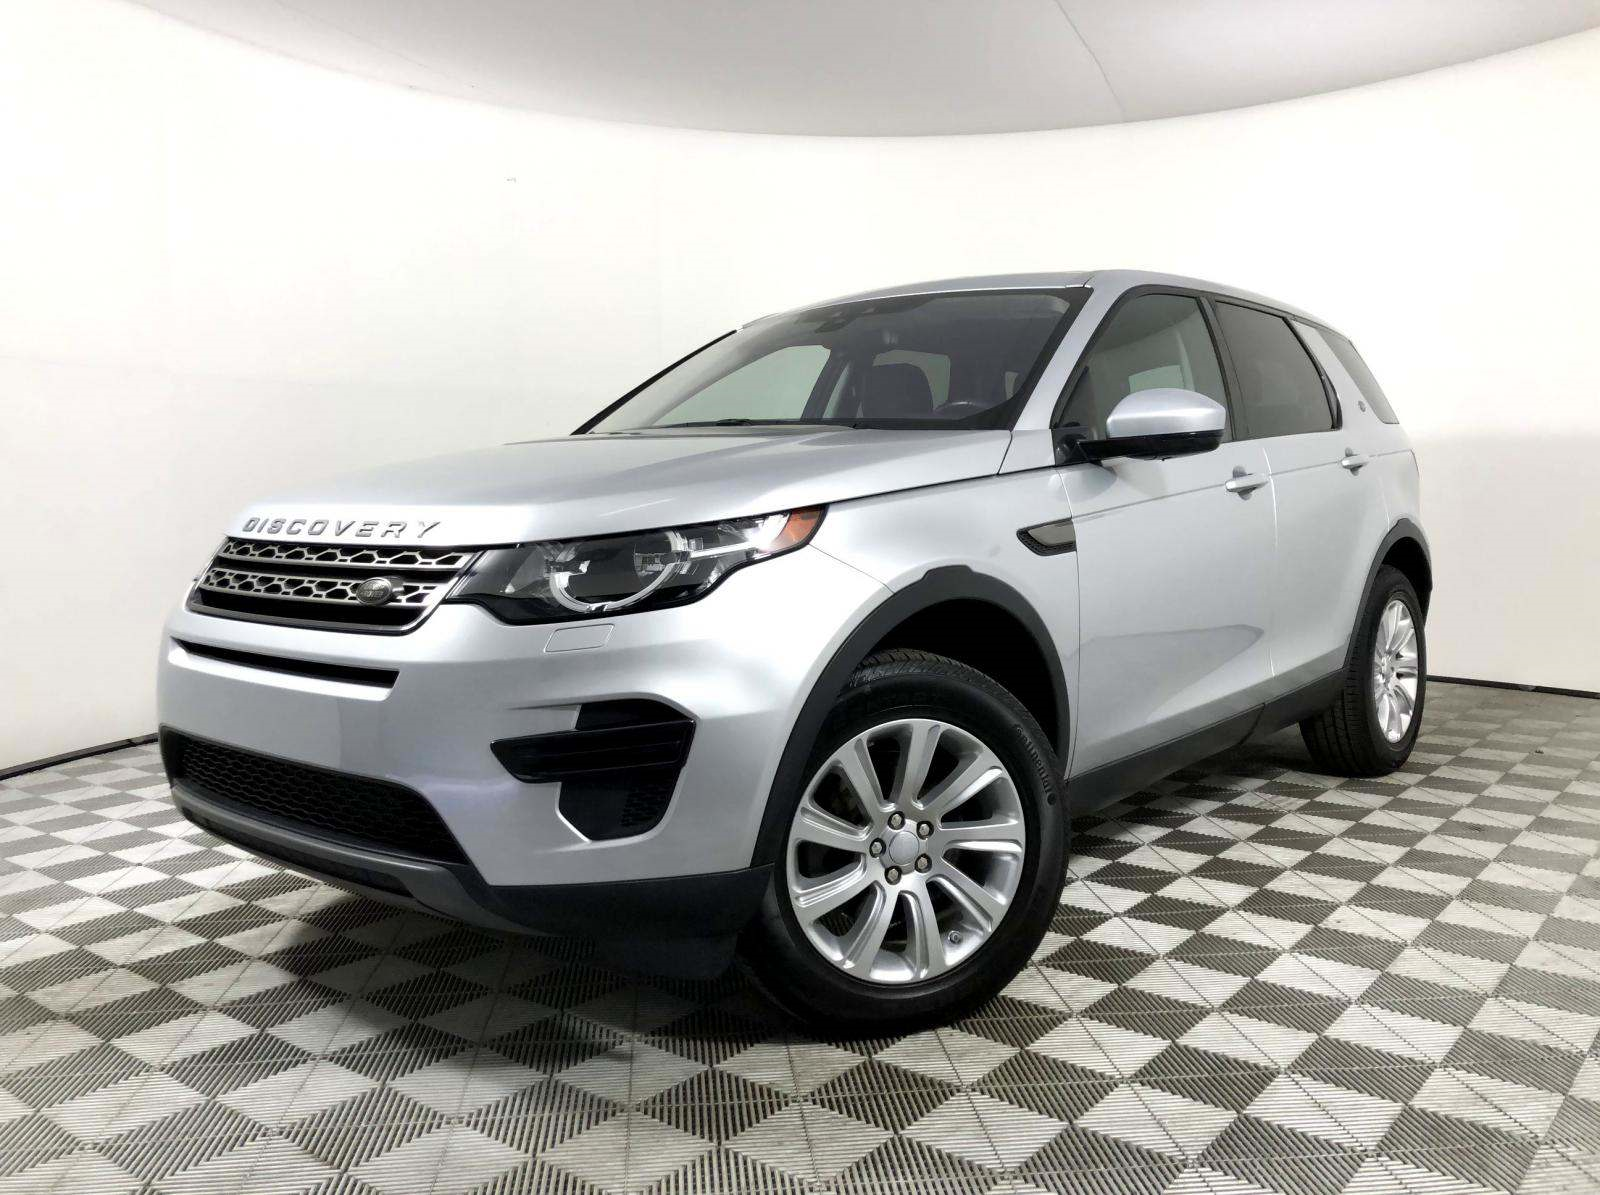 2017 Land Rover Discovery Sport 28030 00 For Sale In Stafford Tx 77477 Incacar Com Land Rover Land Rover Discovery Sport Land Rover Models